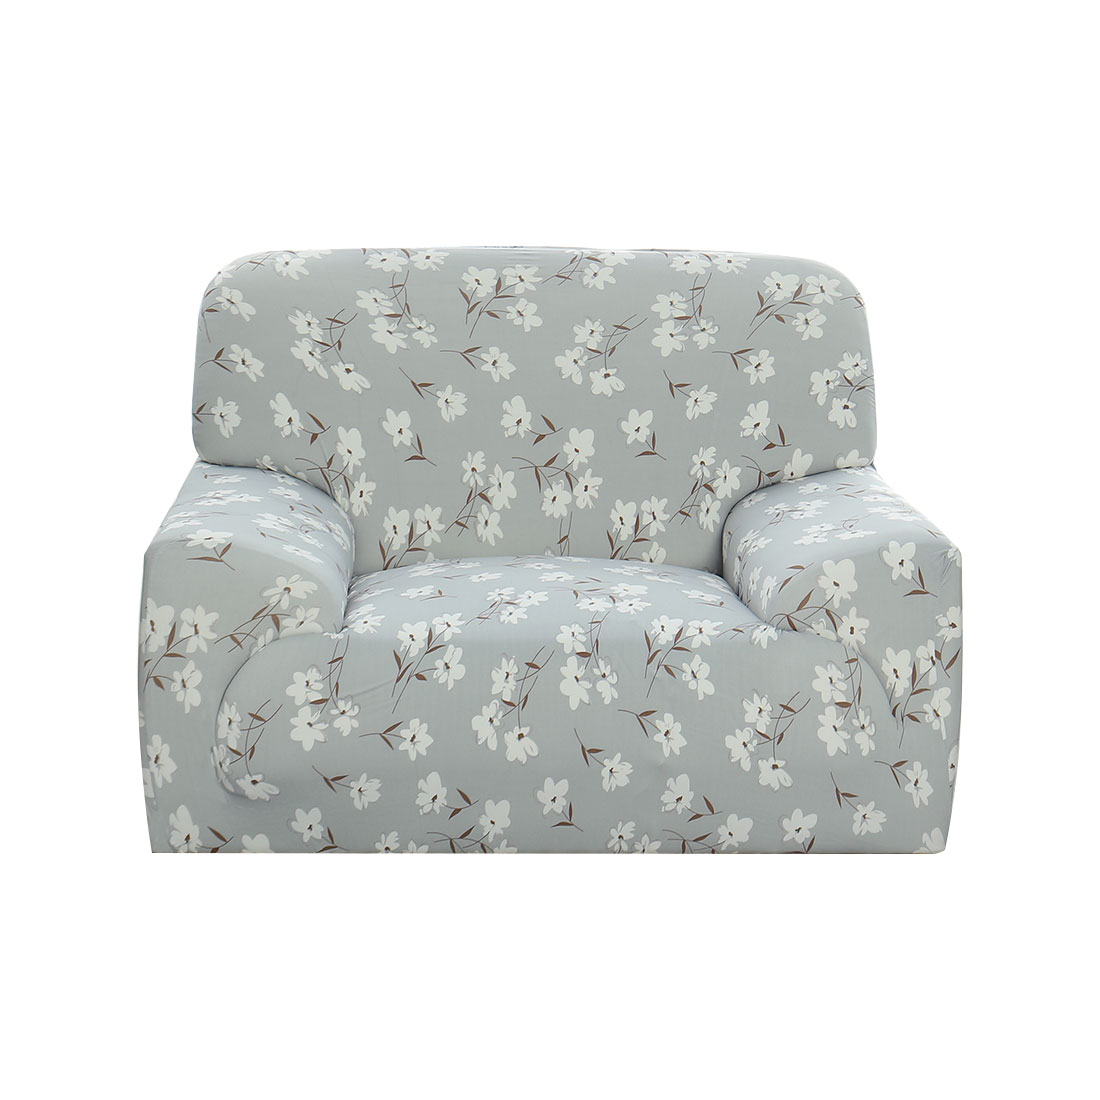 Sofa Couch Cover Slipcovers 1 Seater Strecth Protector for Sofa Couch Pattern 6